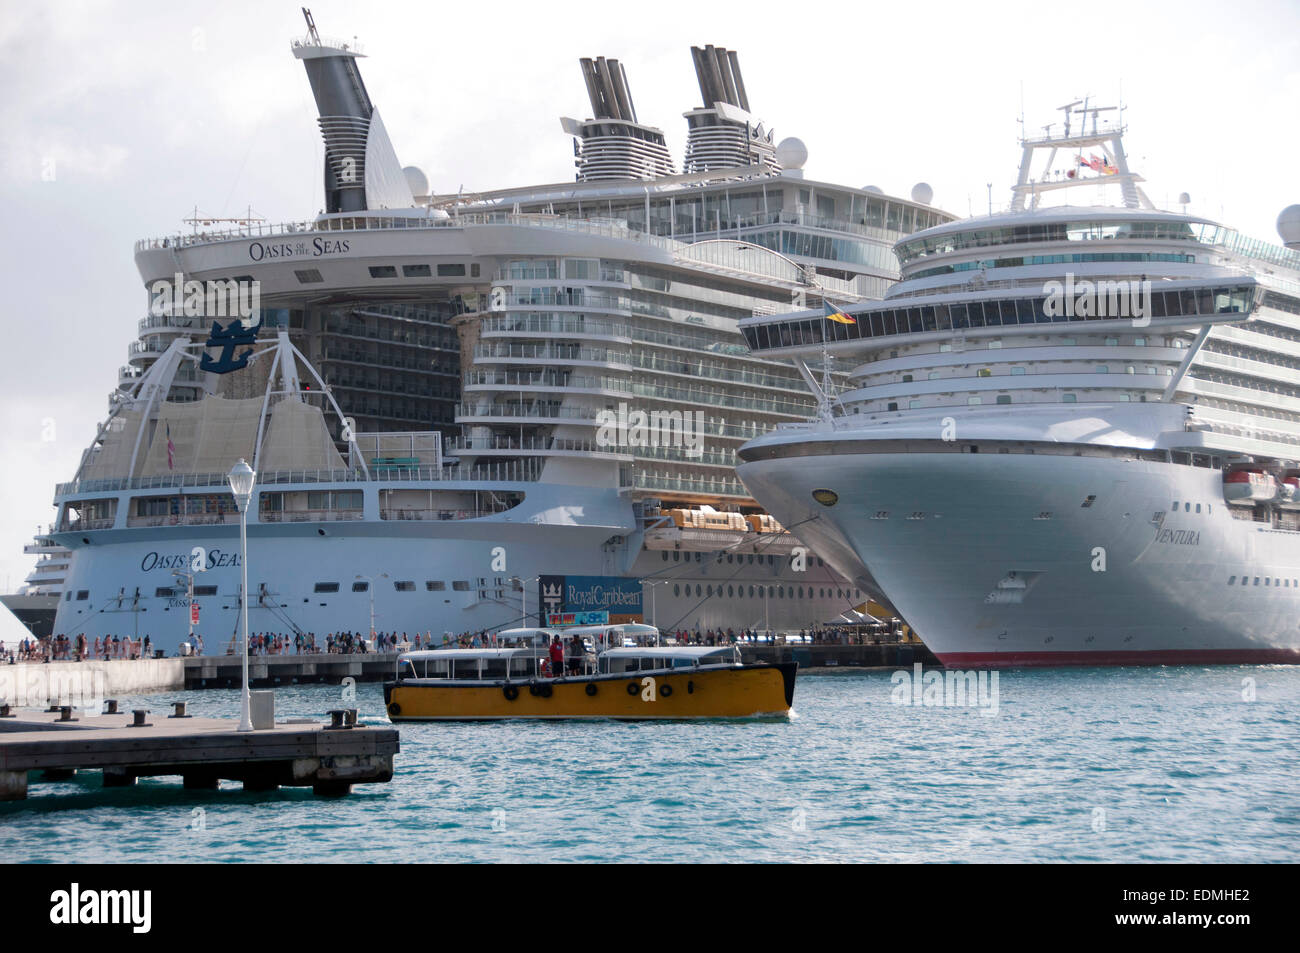 The Oasis Of Seas